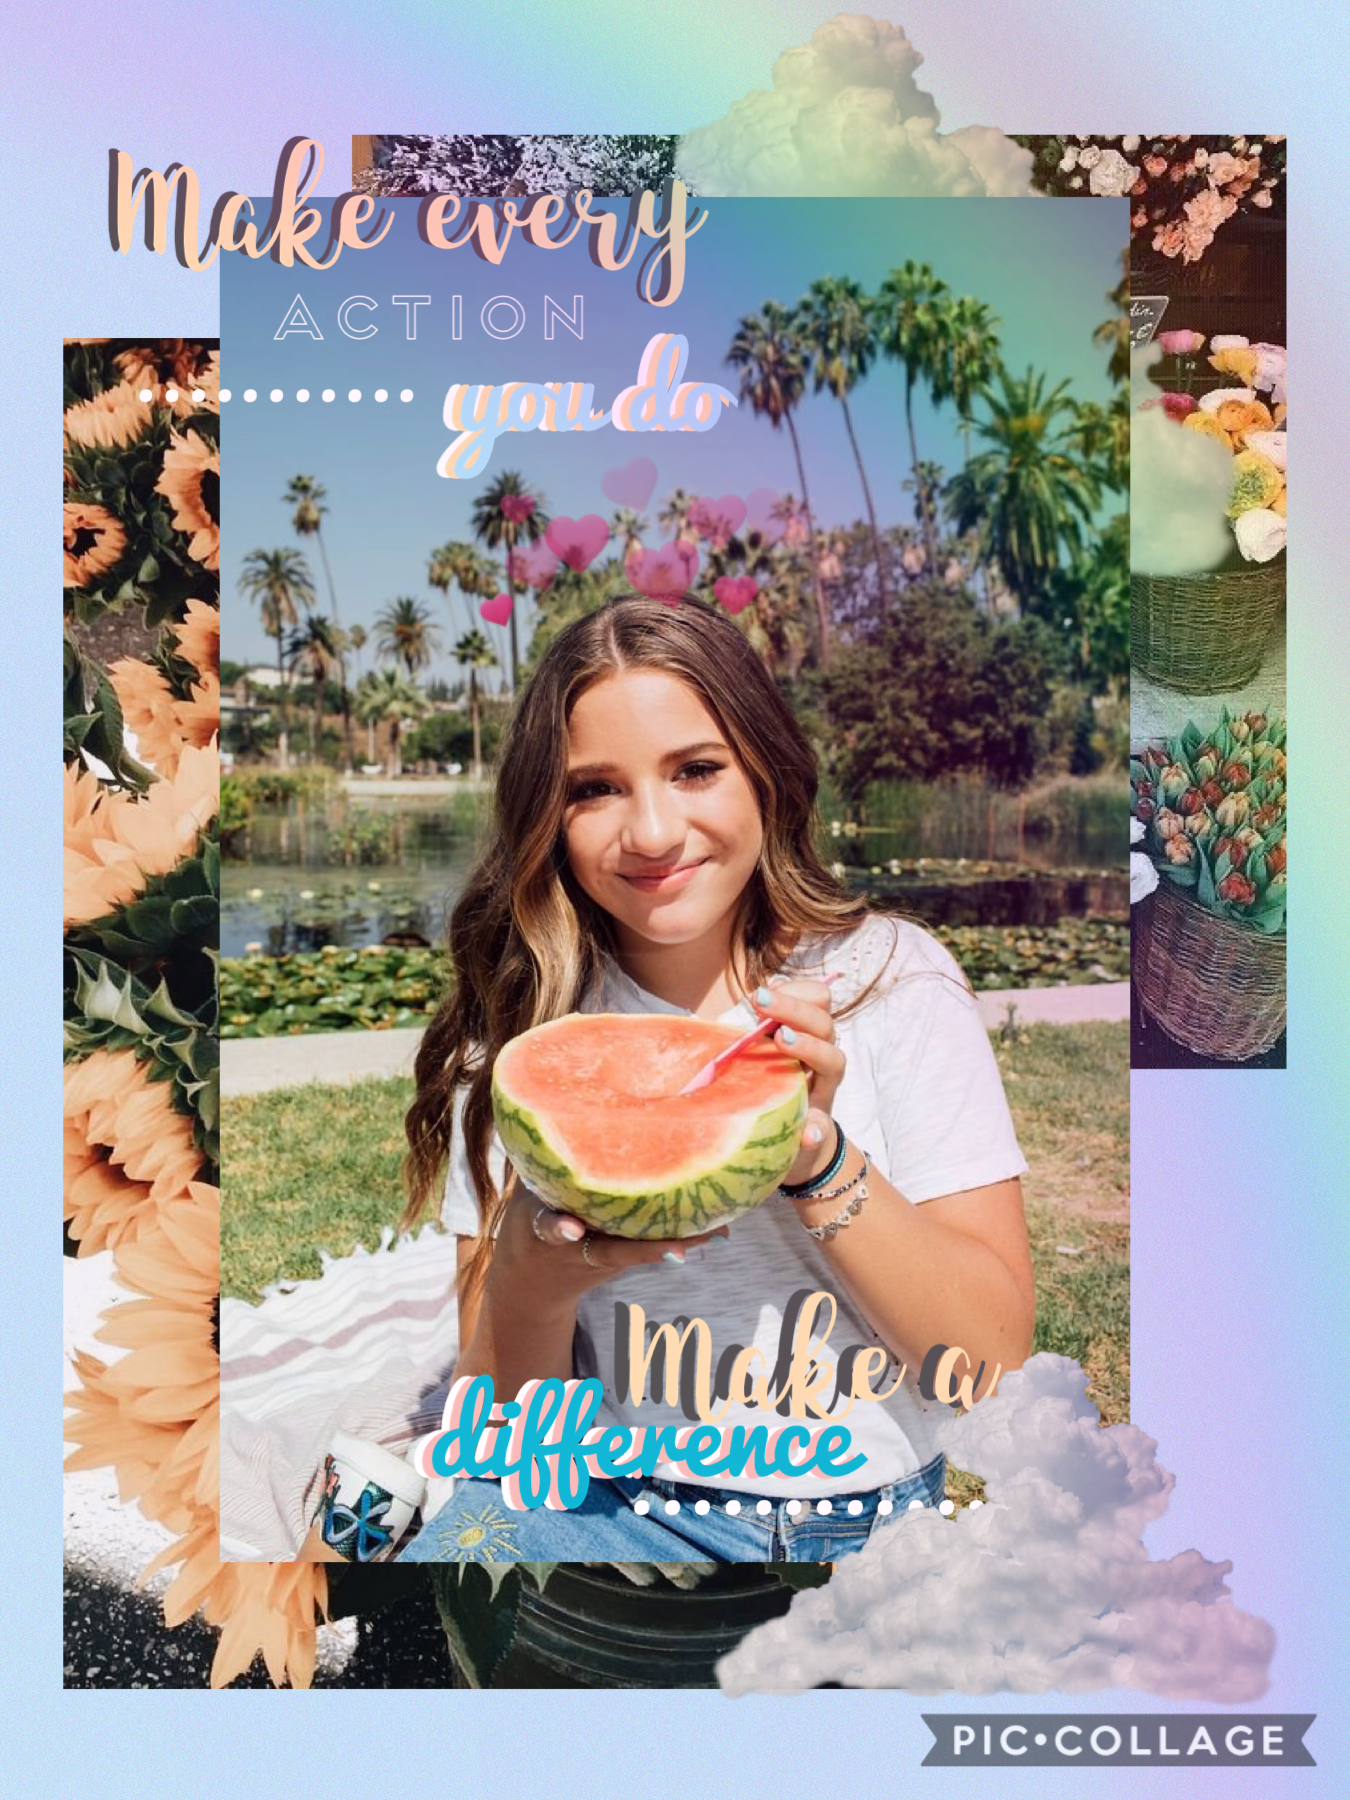 New style! 💝I'm going for a summer themed happy vibe so lmk what u think! 🤩 is anyone super exhausted reading this or is it just me 😴😴😪  ⚠️Don't forget to enter round 3! Entries due in 4 days! ⚠️